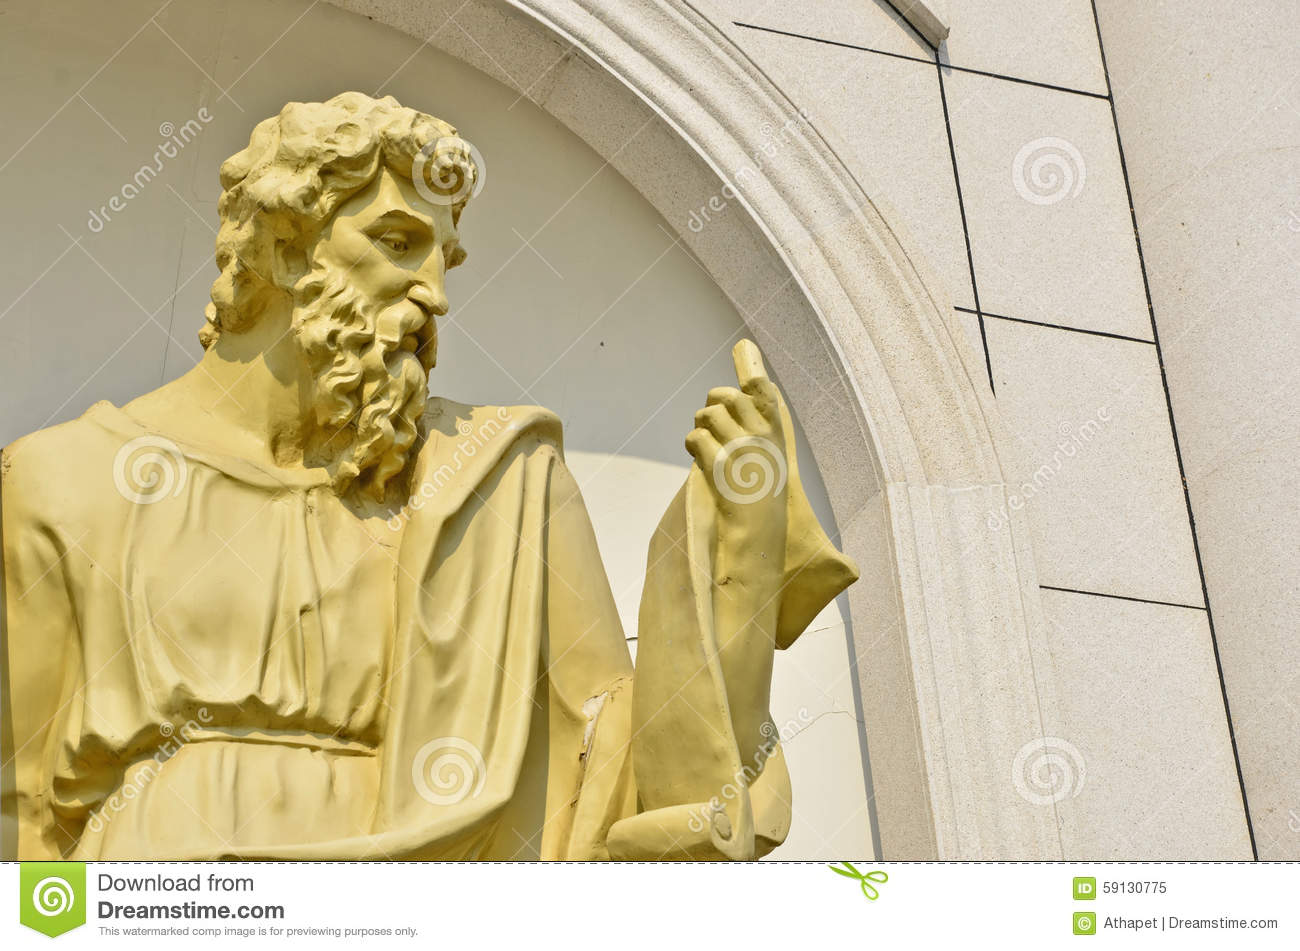 Old man Roman sculpture stock image. Image of gold, stone - 59130775